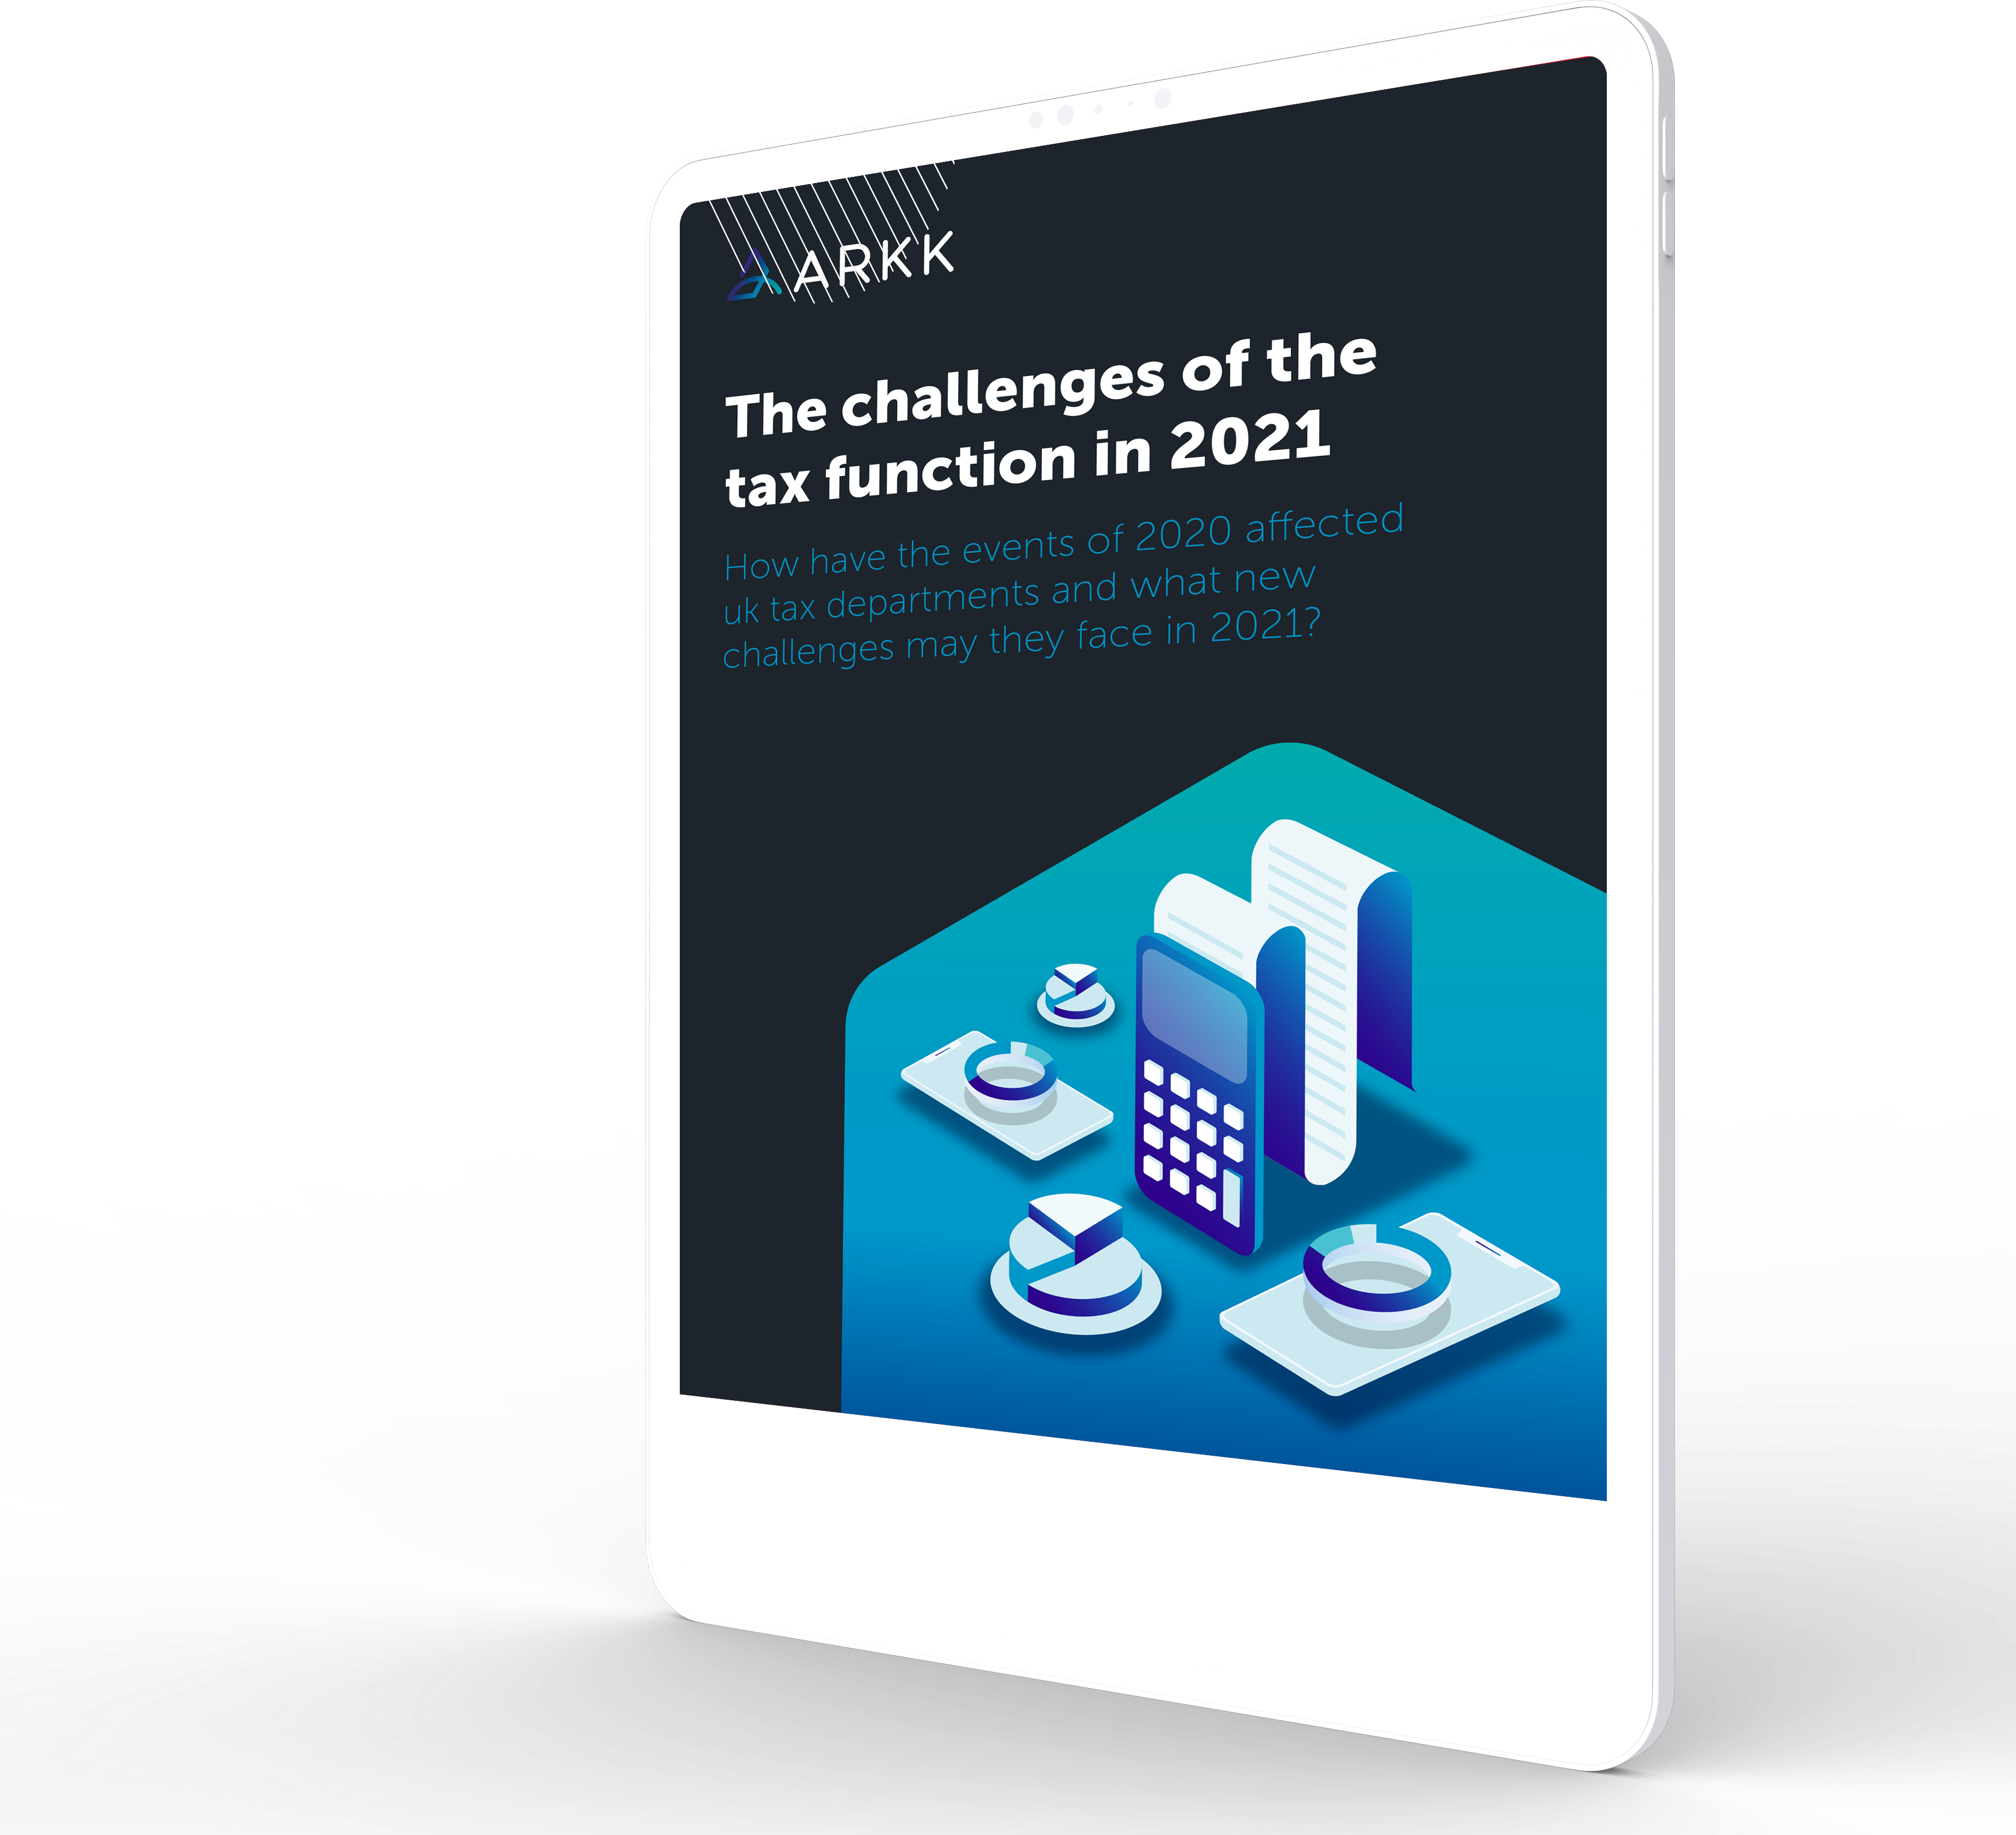 The challenges of the tax function in 2021 report icon